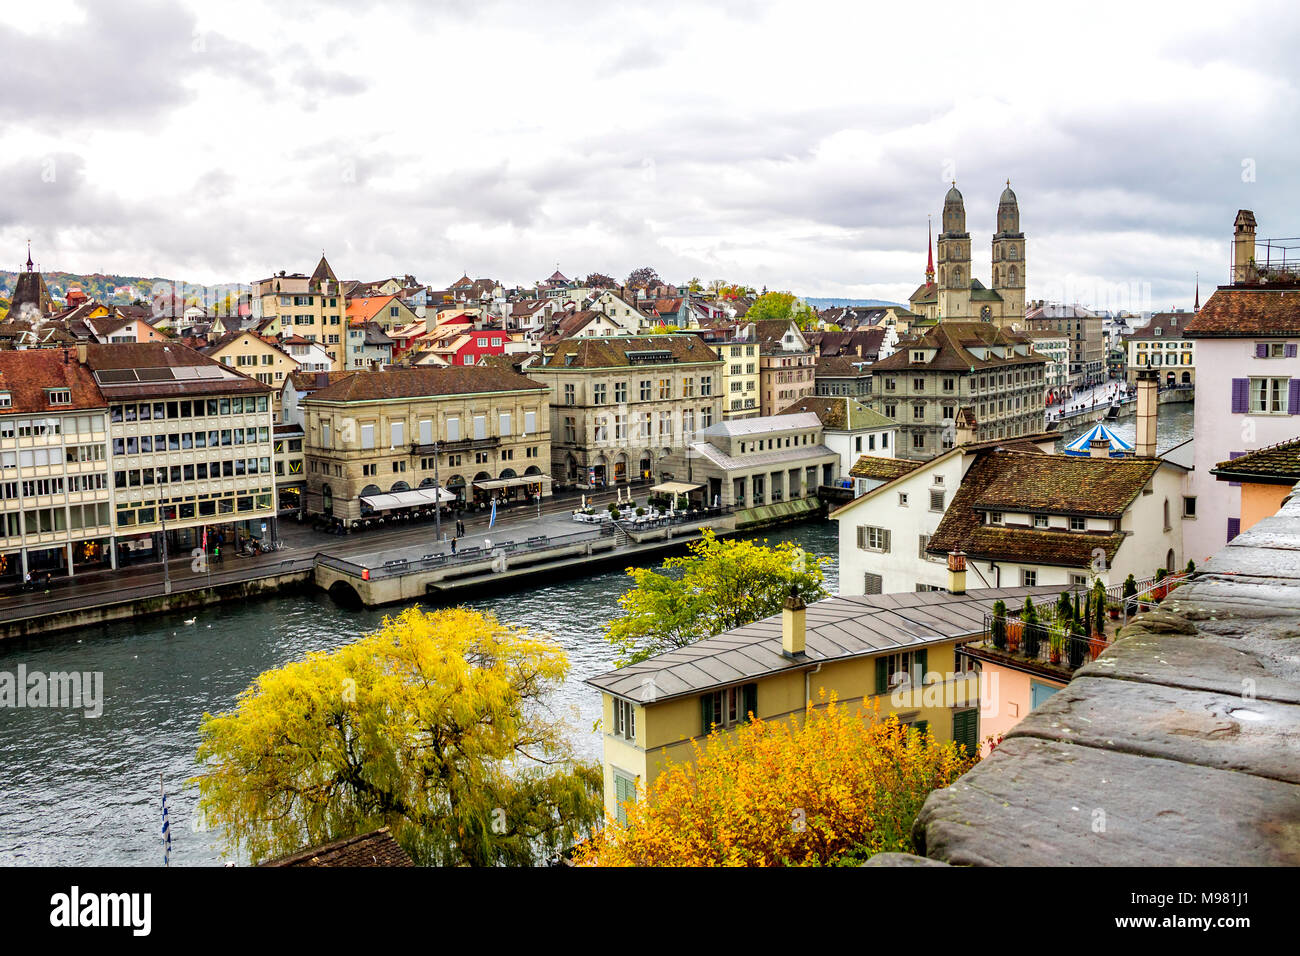 Switzerland, Zurich, view to the city with Great Minster and Limmat River - Stock Image